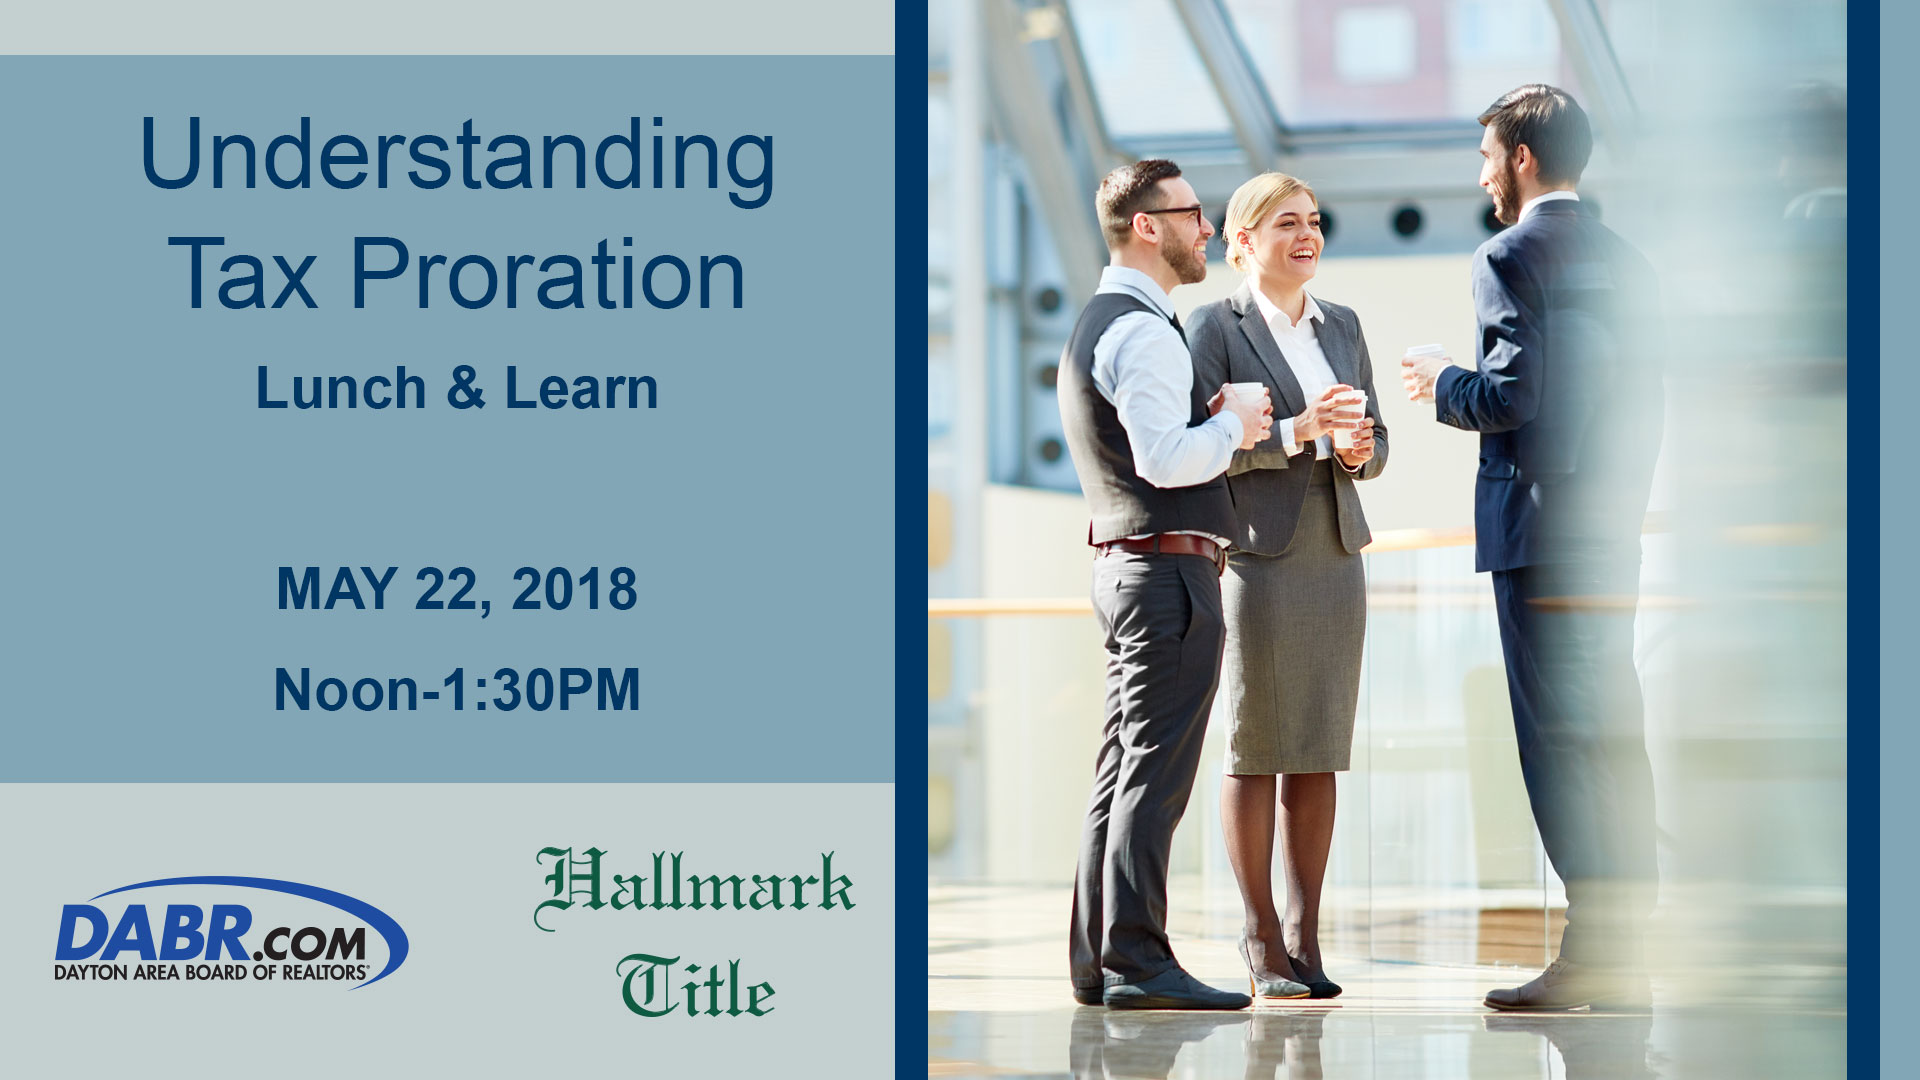 Understanding Tax Proration: Lunch & Learn